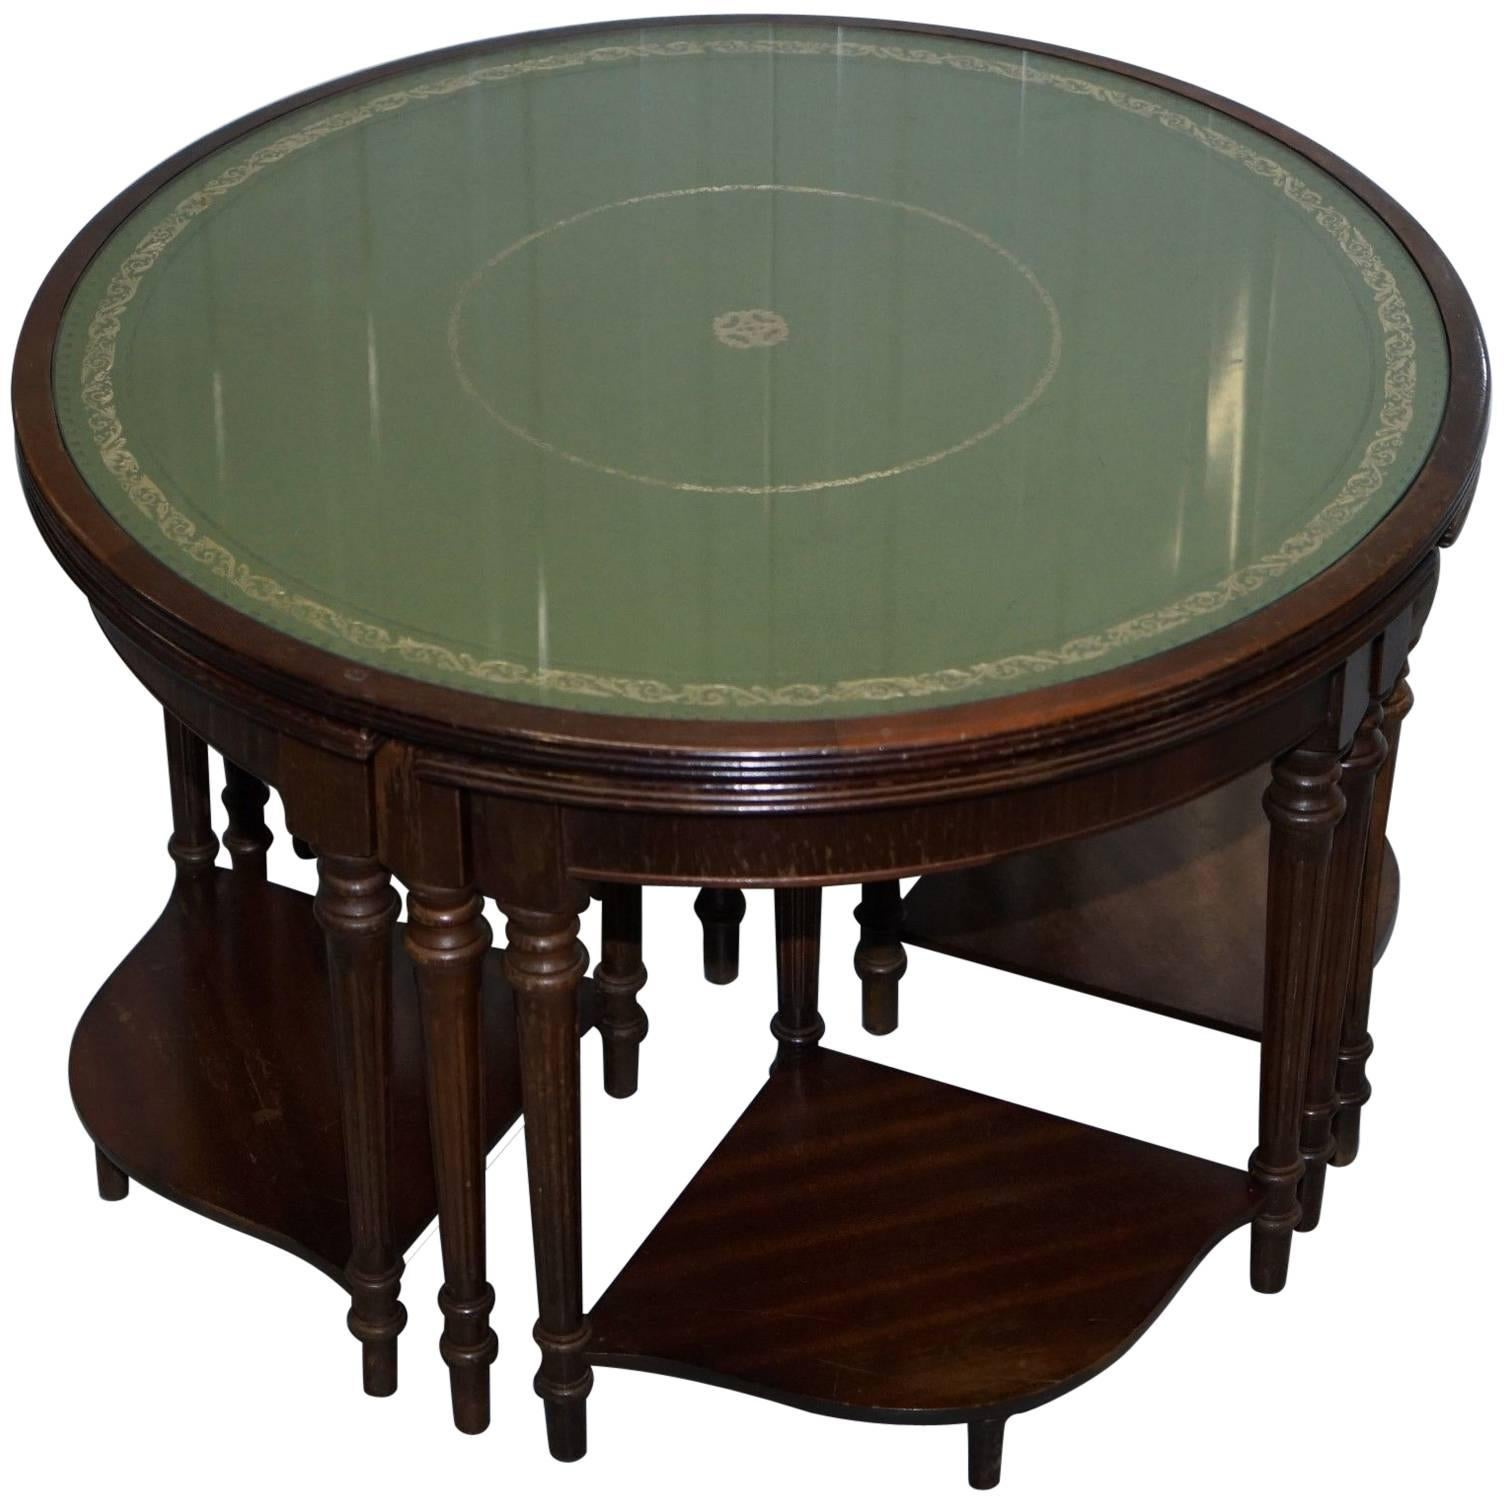 Lovely Regency Style Drum Coffee Table With Nested Tables Under Green  Leather For Sale